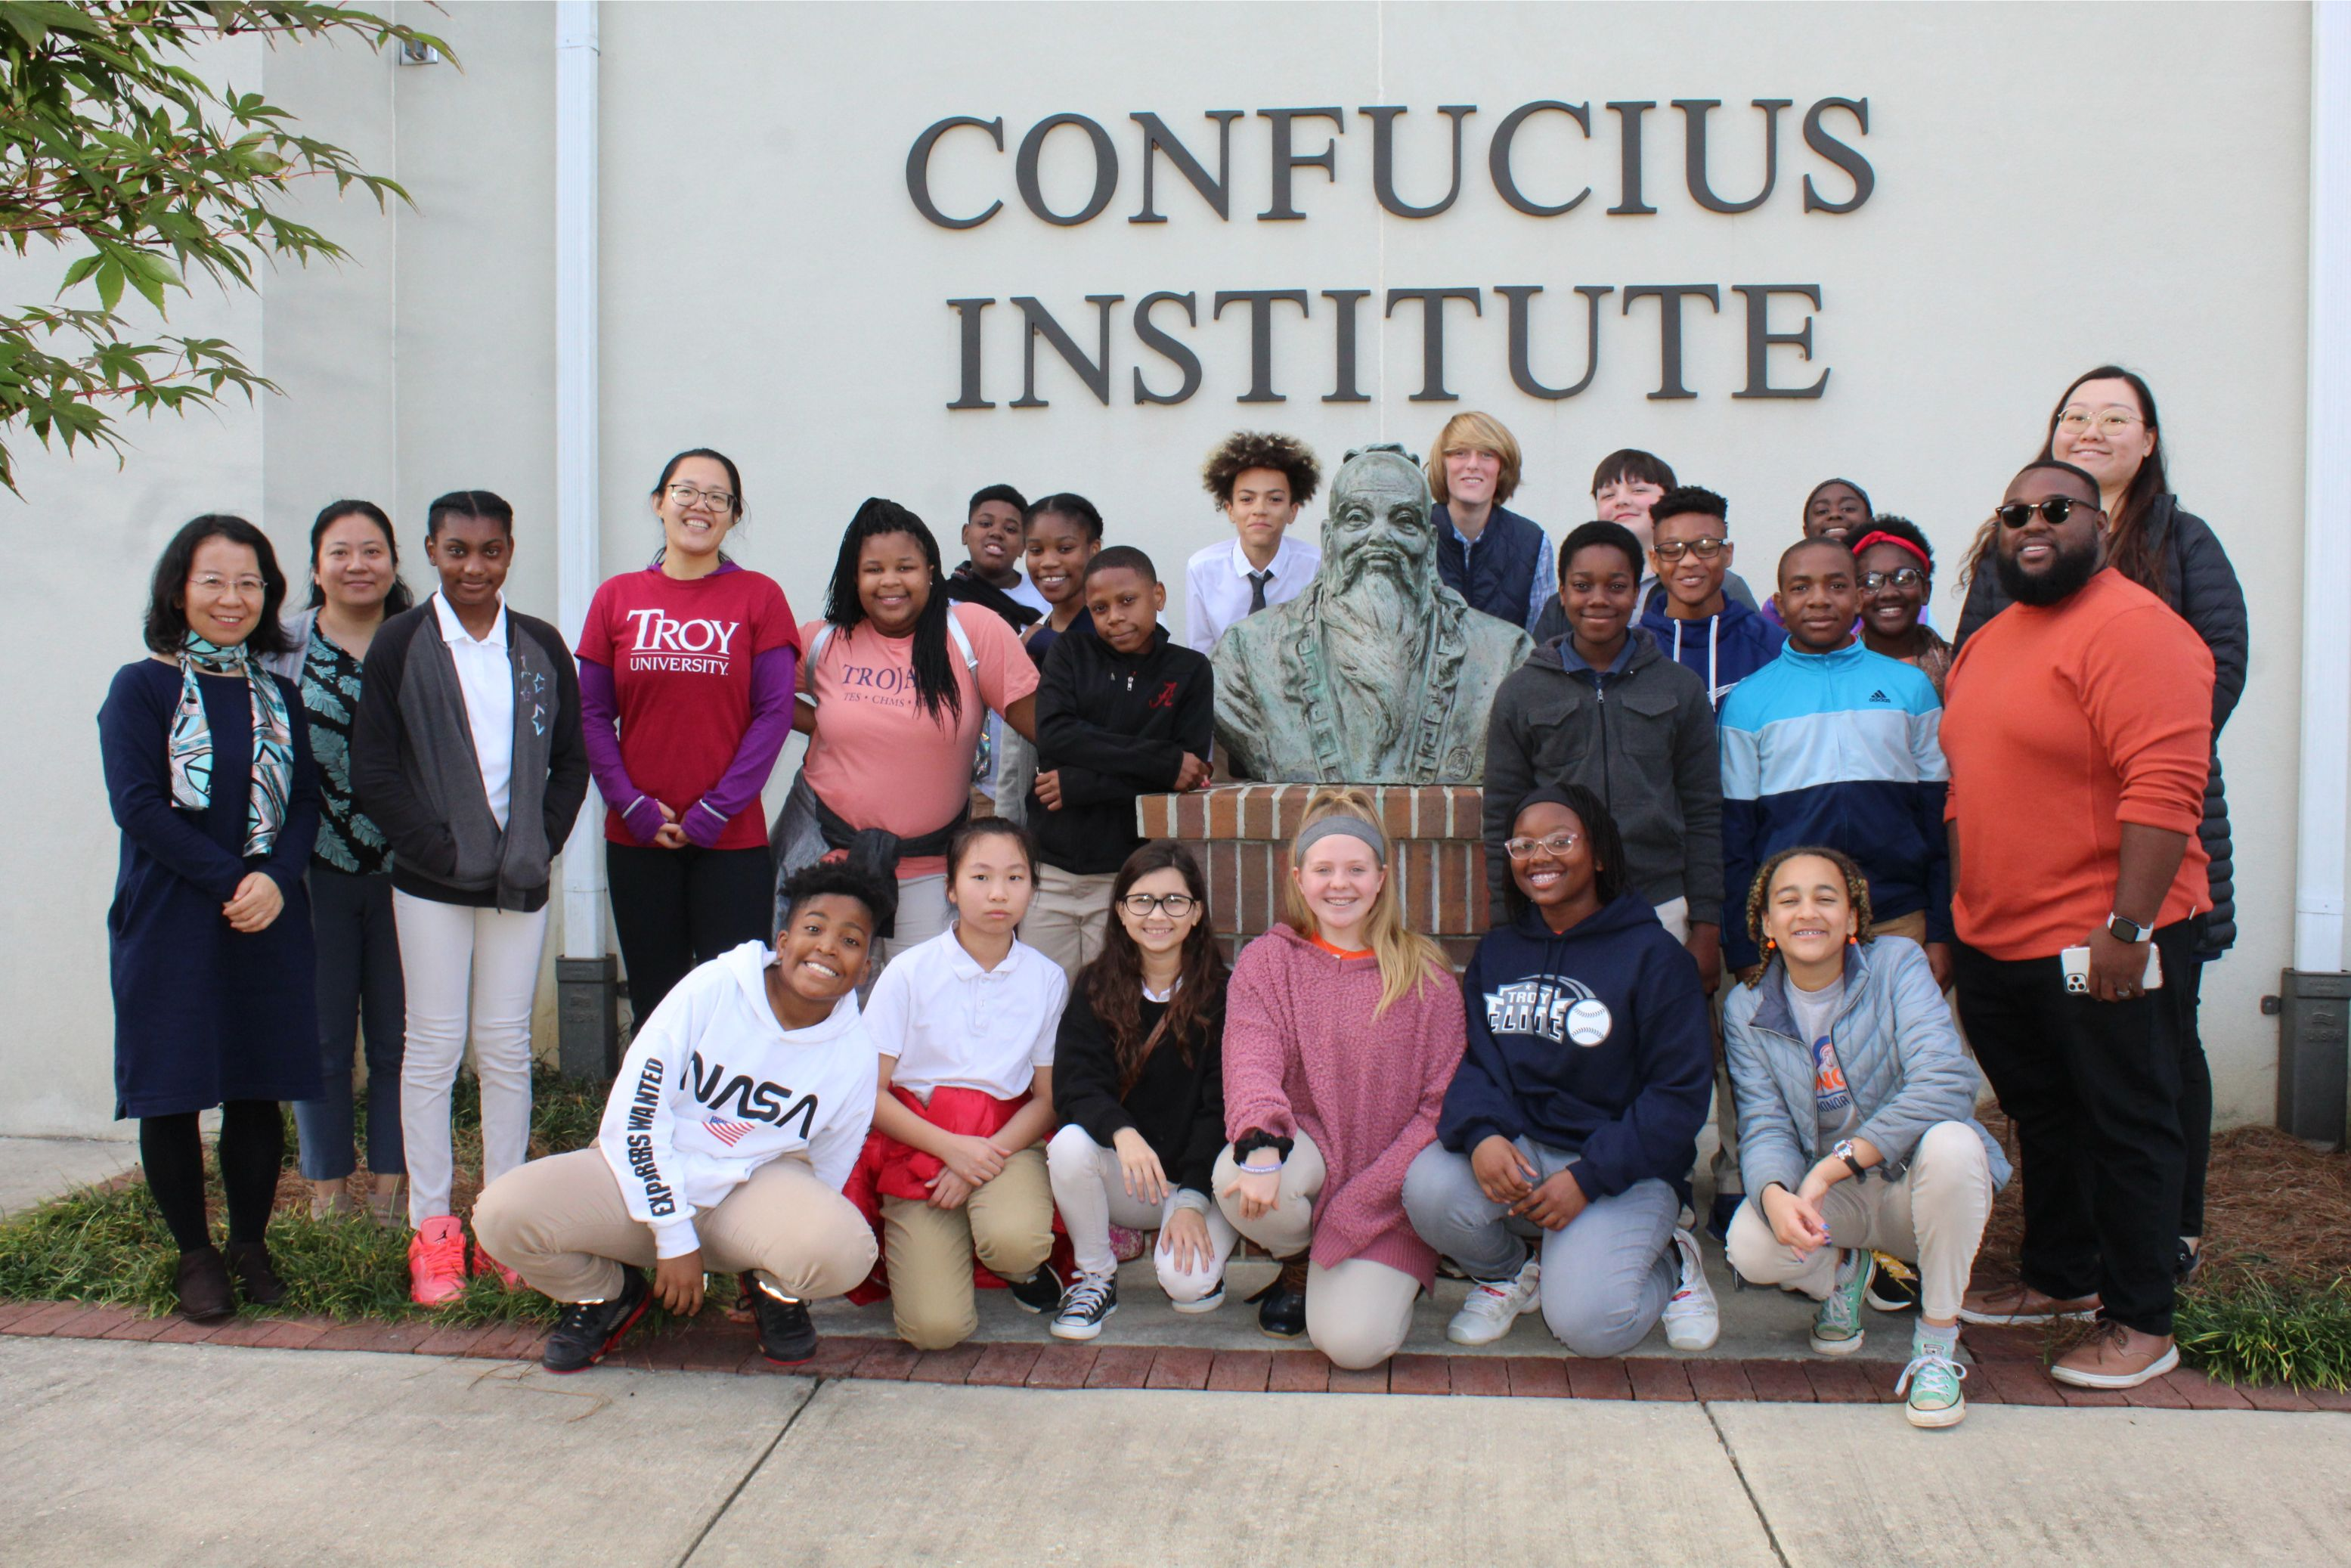 The students pose in a group picture by the Confucius statue outside of CIT.